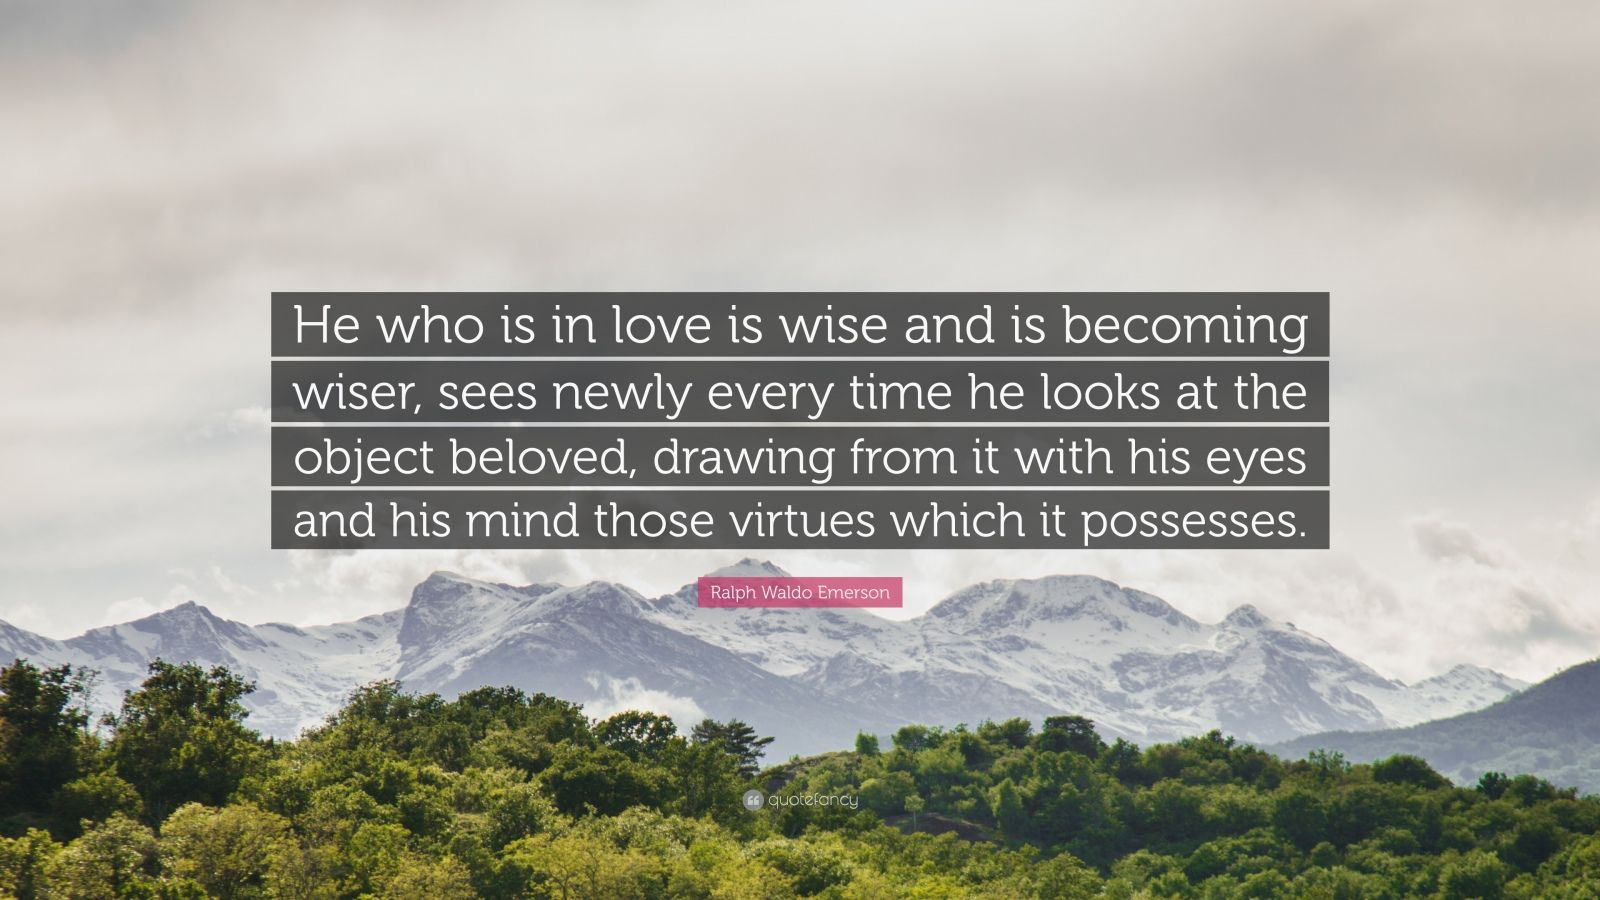 """Ralph Waldo Emerson Quote: """"He who is in love is wise and is becoming wiser, sees newly every time he looks at the object beloved, drawing from it with his eyes and his mind those virtues which it possesses."""""""